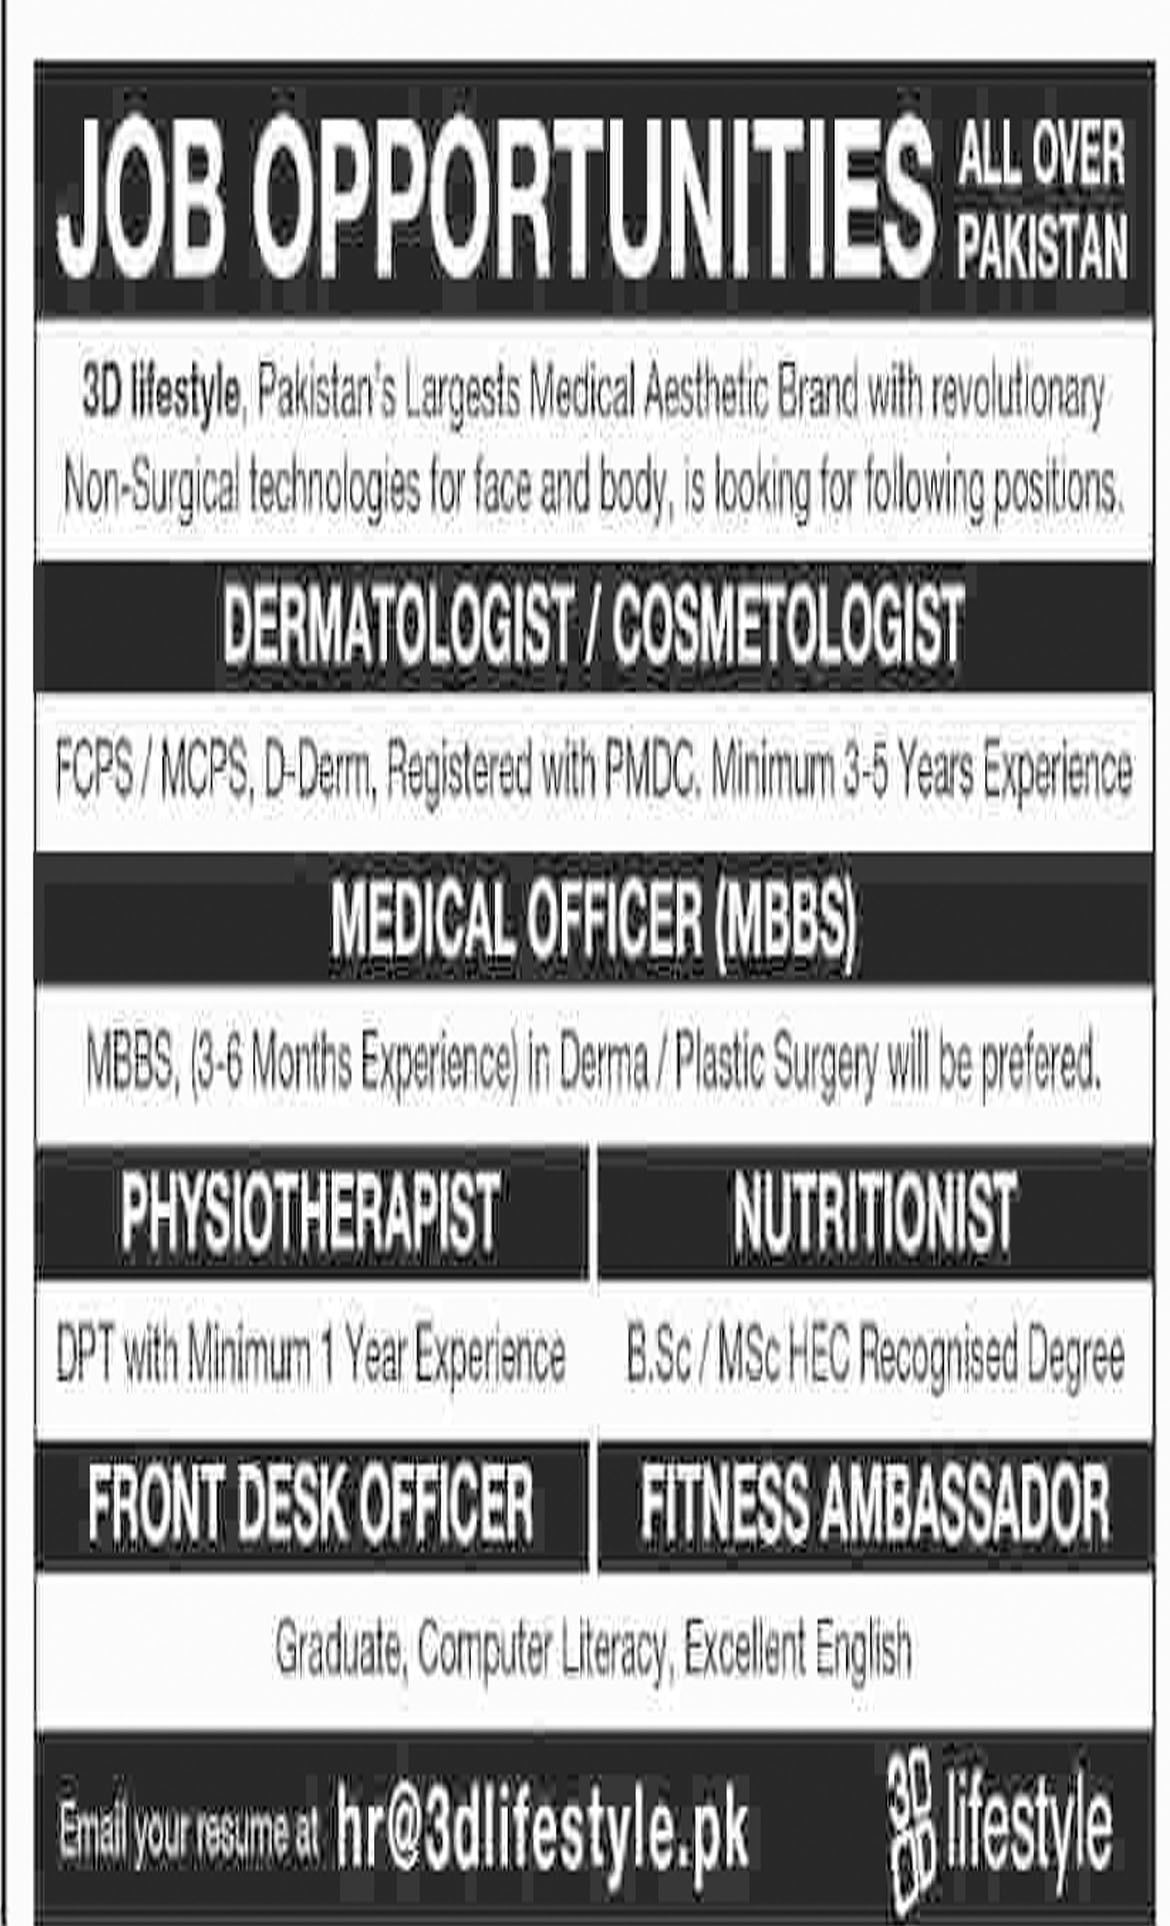 Jobs in Dermatologist, Medical Officer, Physiotherapist, Front Desk Officer, 10 Dec 2018